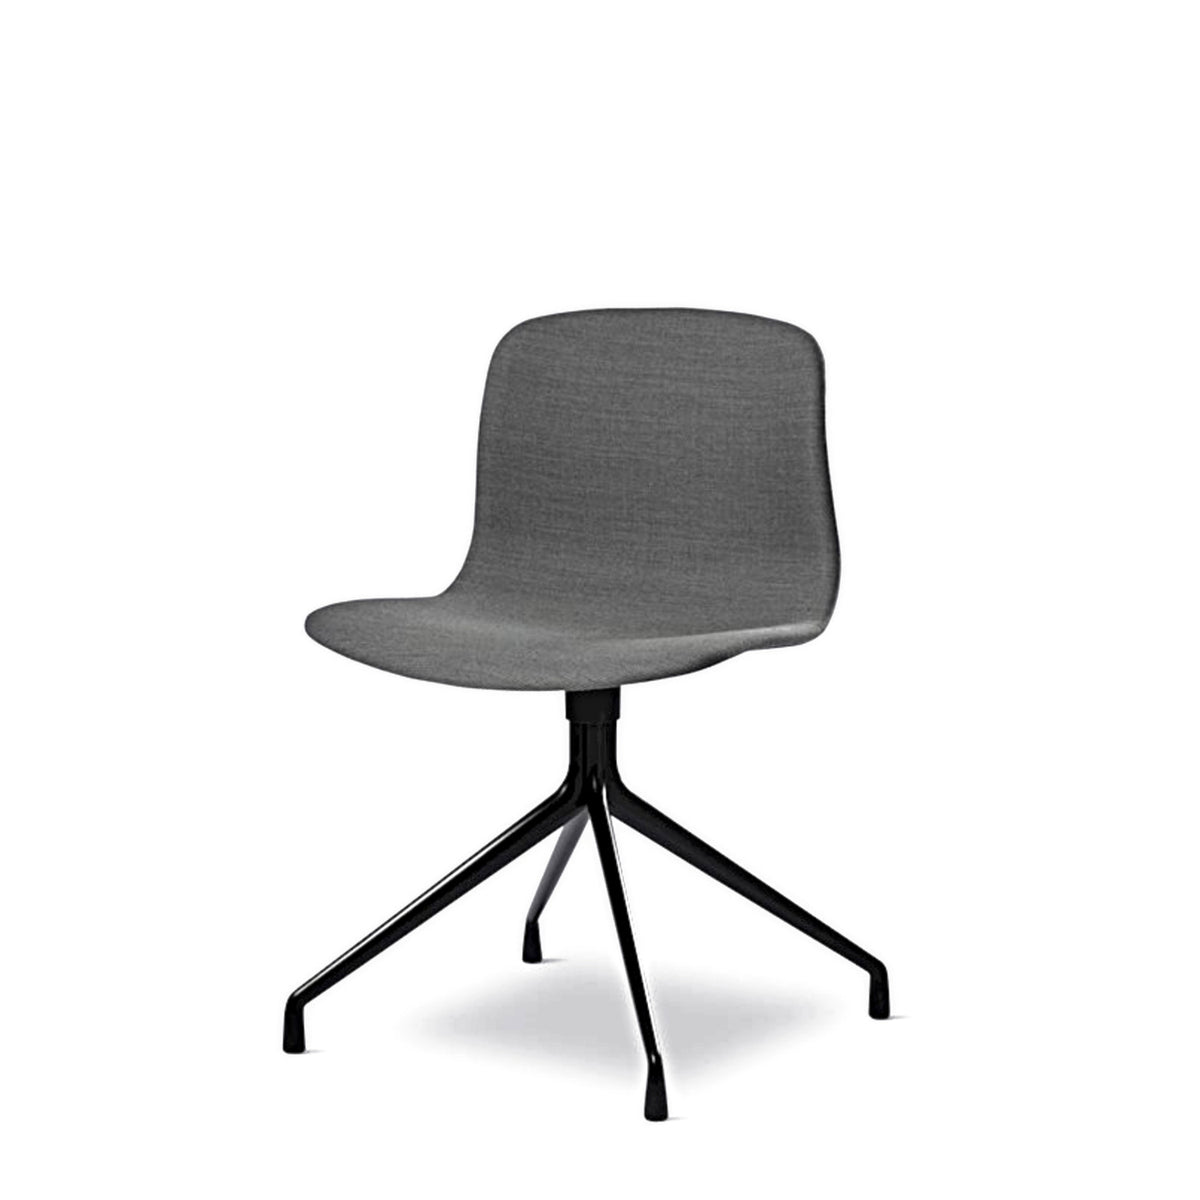 HAY About A Chair AAC11 Grey Steelcut Trio 0153 Chair with Black Powder Coated Base